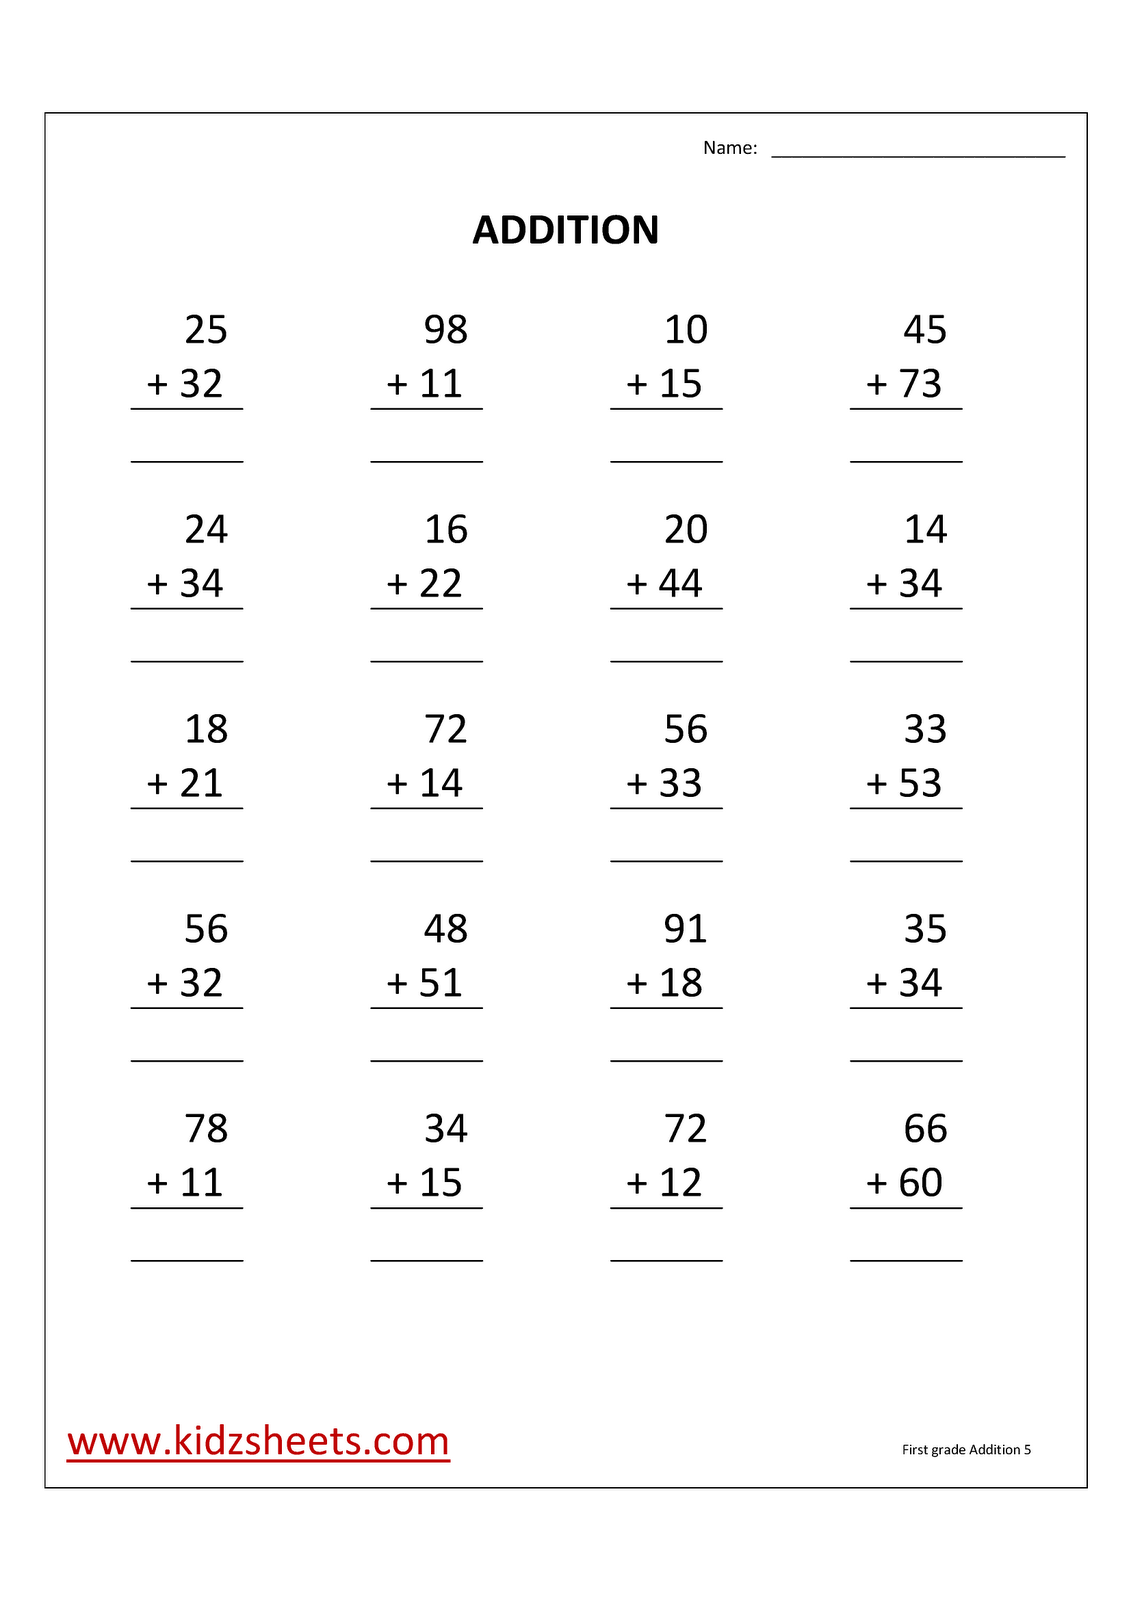 Worksheet 612792 Addition Worksheets Year 5 Addition – Addition Worksheets for Grade 4